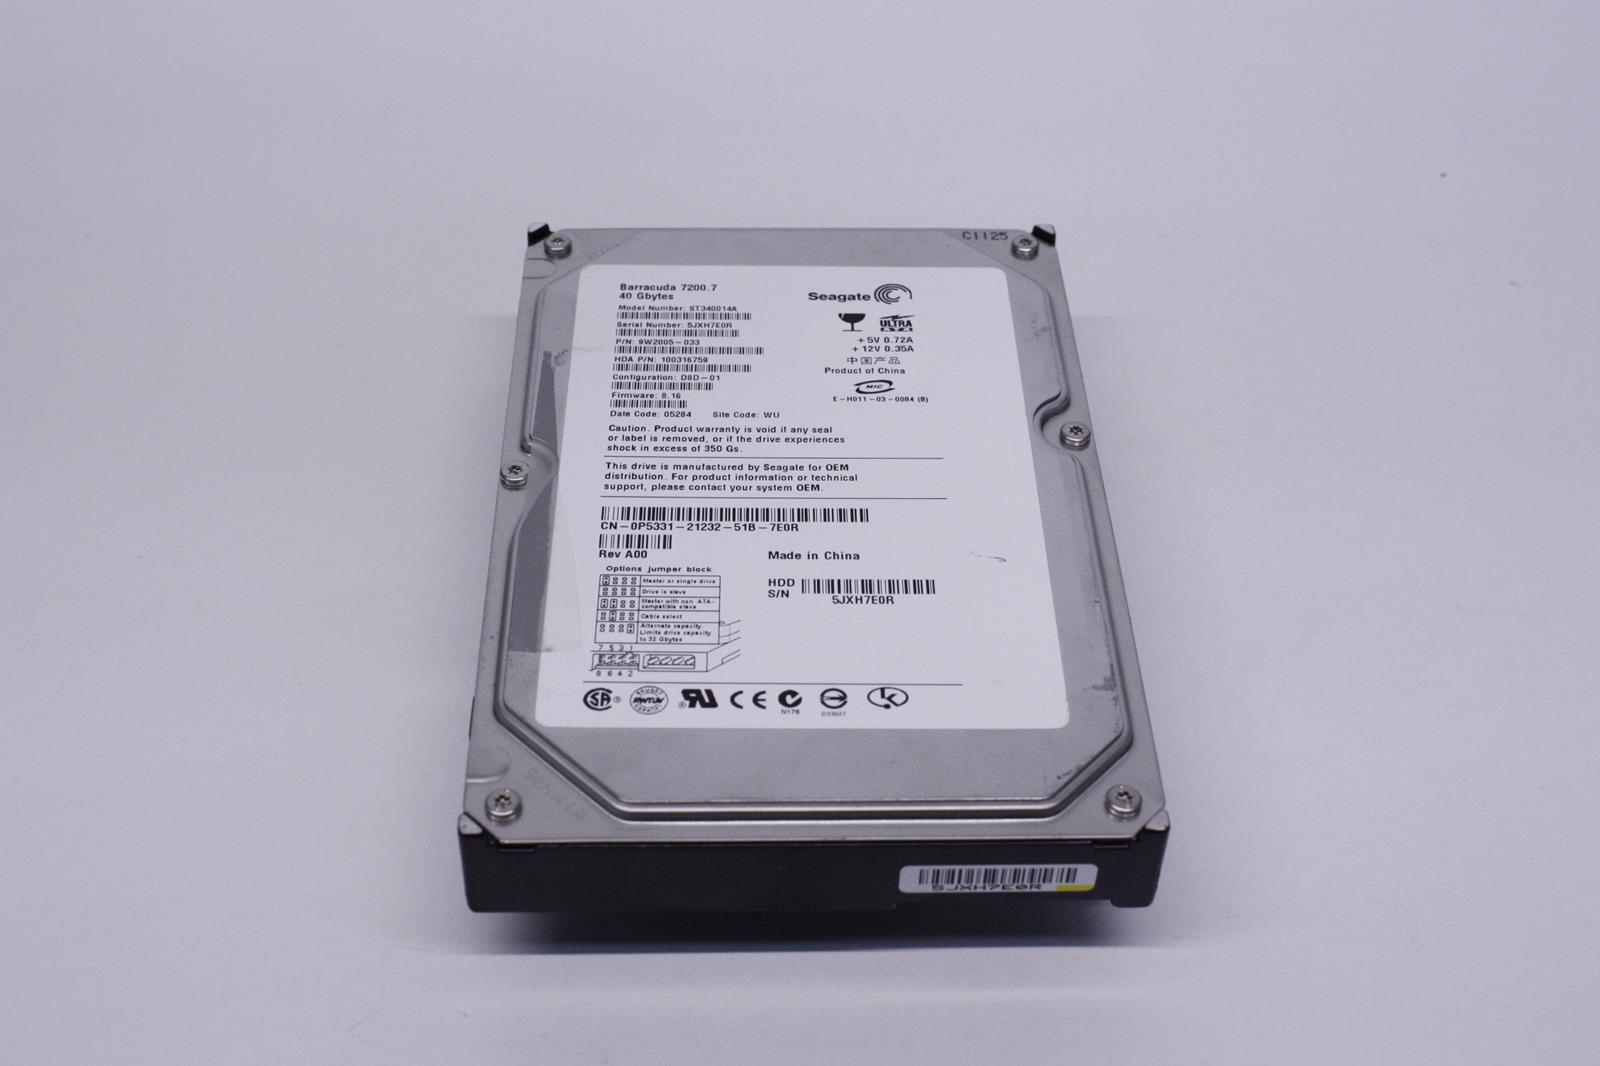 Details about DELL/SEAGATE 095331 - ST340014A 7200 7 40GB 7200RPM IDE HARD  DRIVE